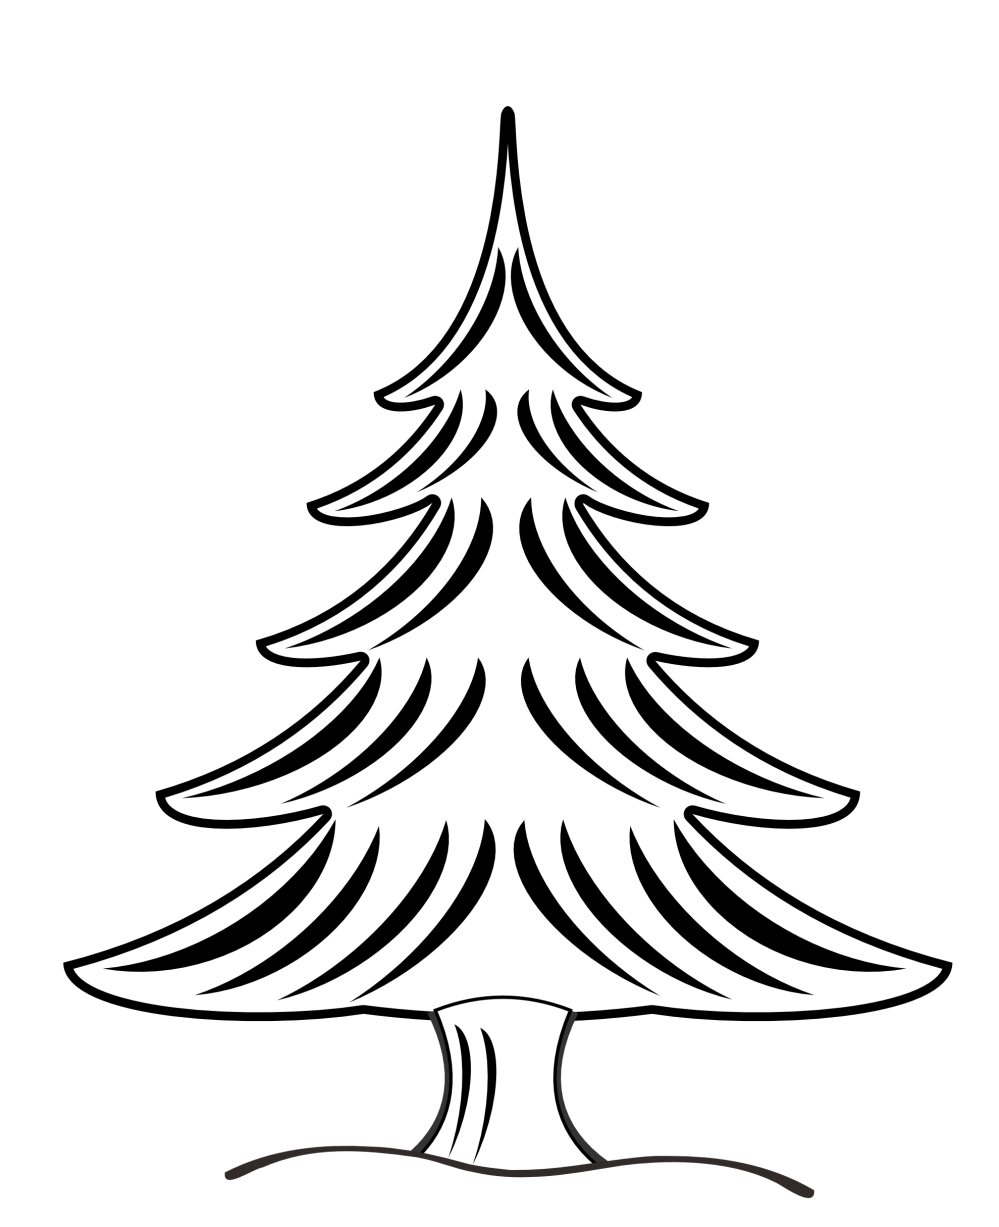 medium resolution of 1979x2430 pine tree silhouette clipart 2